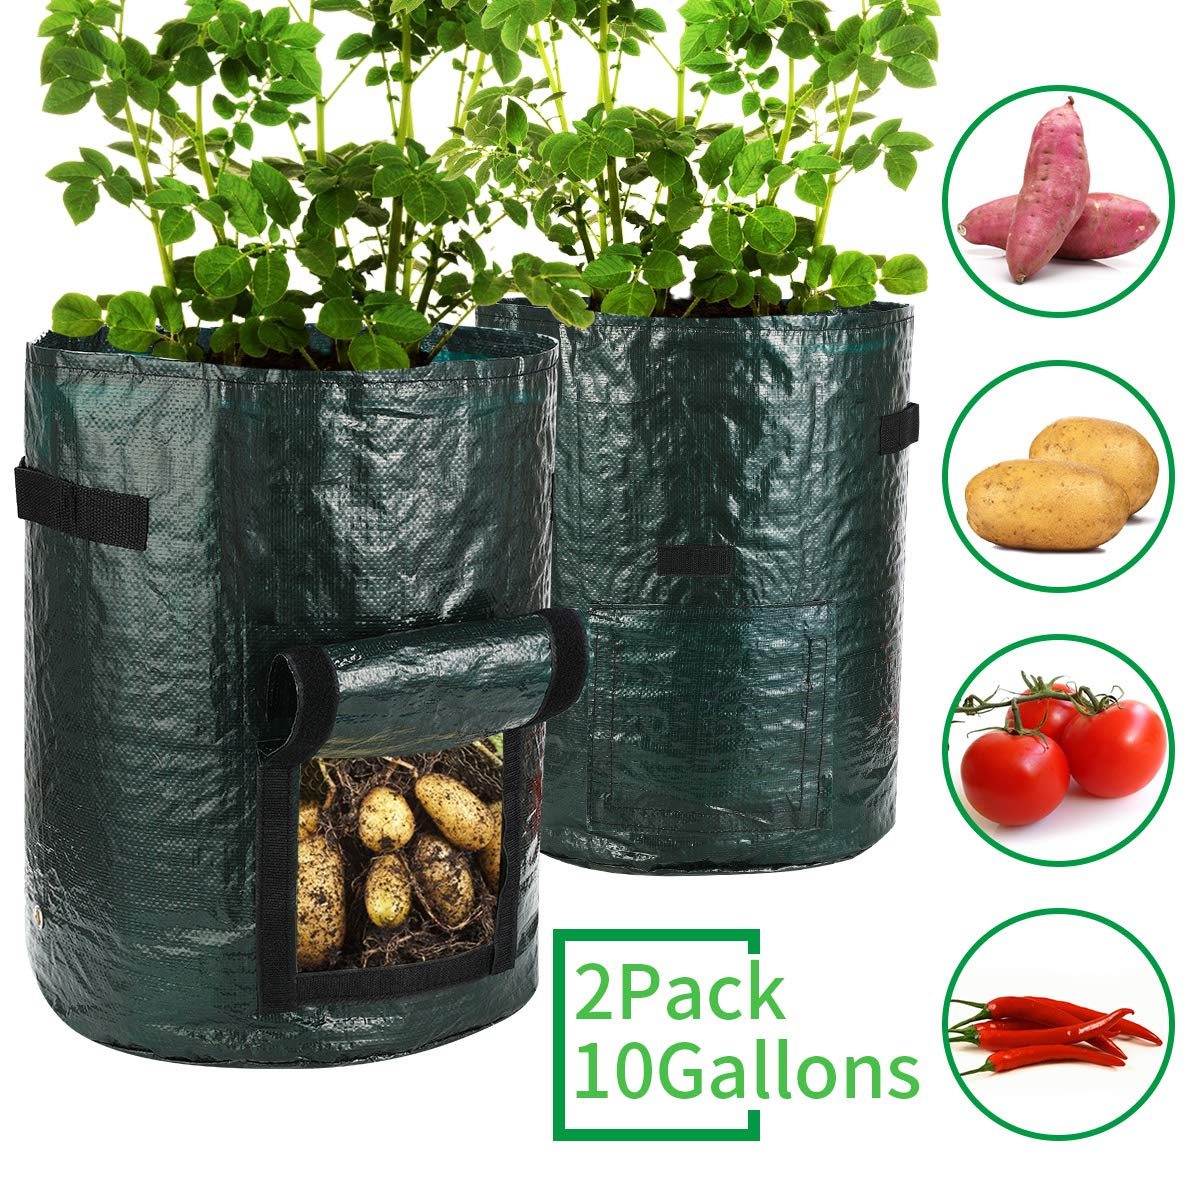 Futone Grow Bags, Potato Planter Bags, Planting PE Aeration Pots with Handles and Flap, Garden Bags for Vegetables, Tomatoes, Carrots, Onions (10 Gallons - 2 Pack - Green)